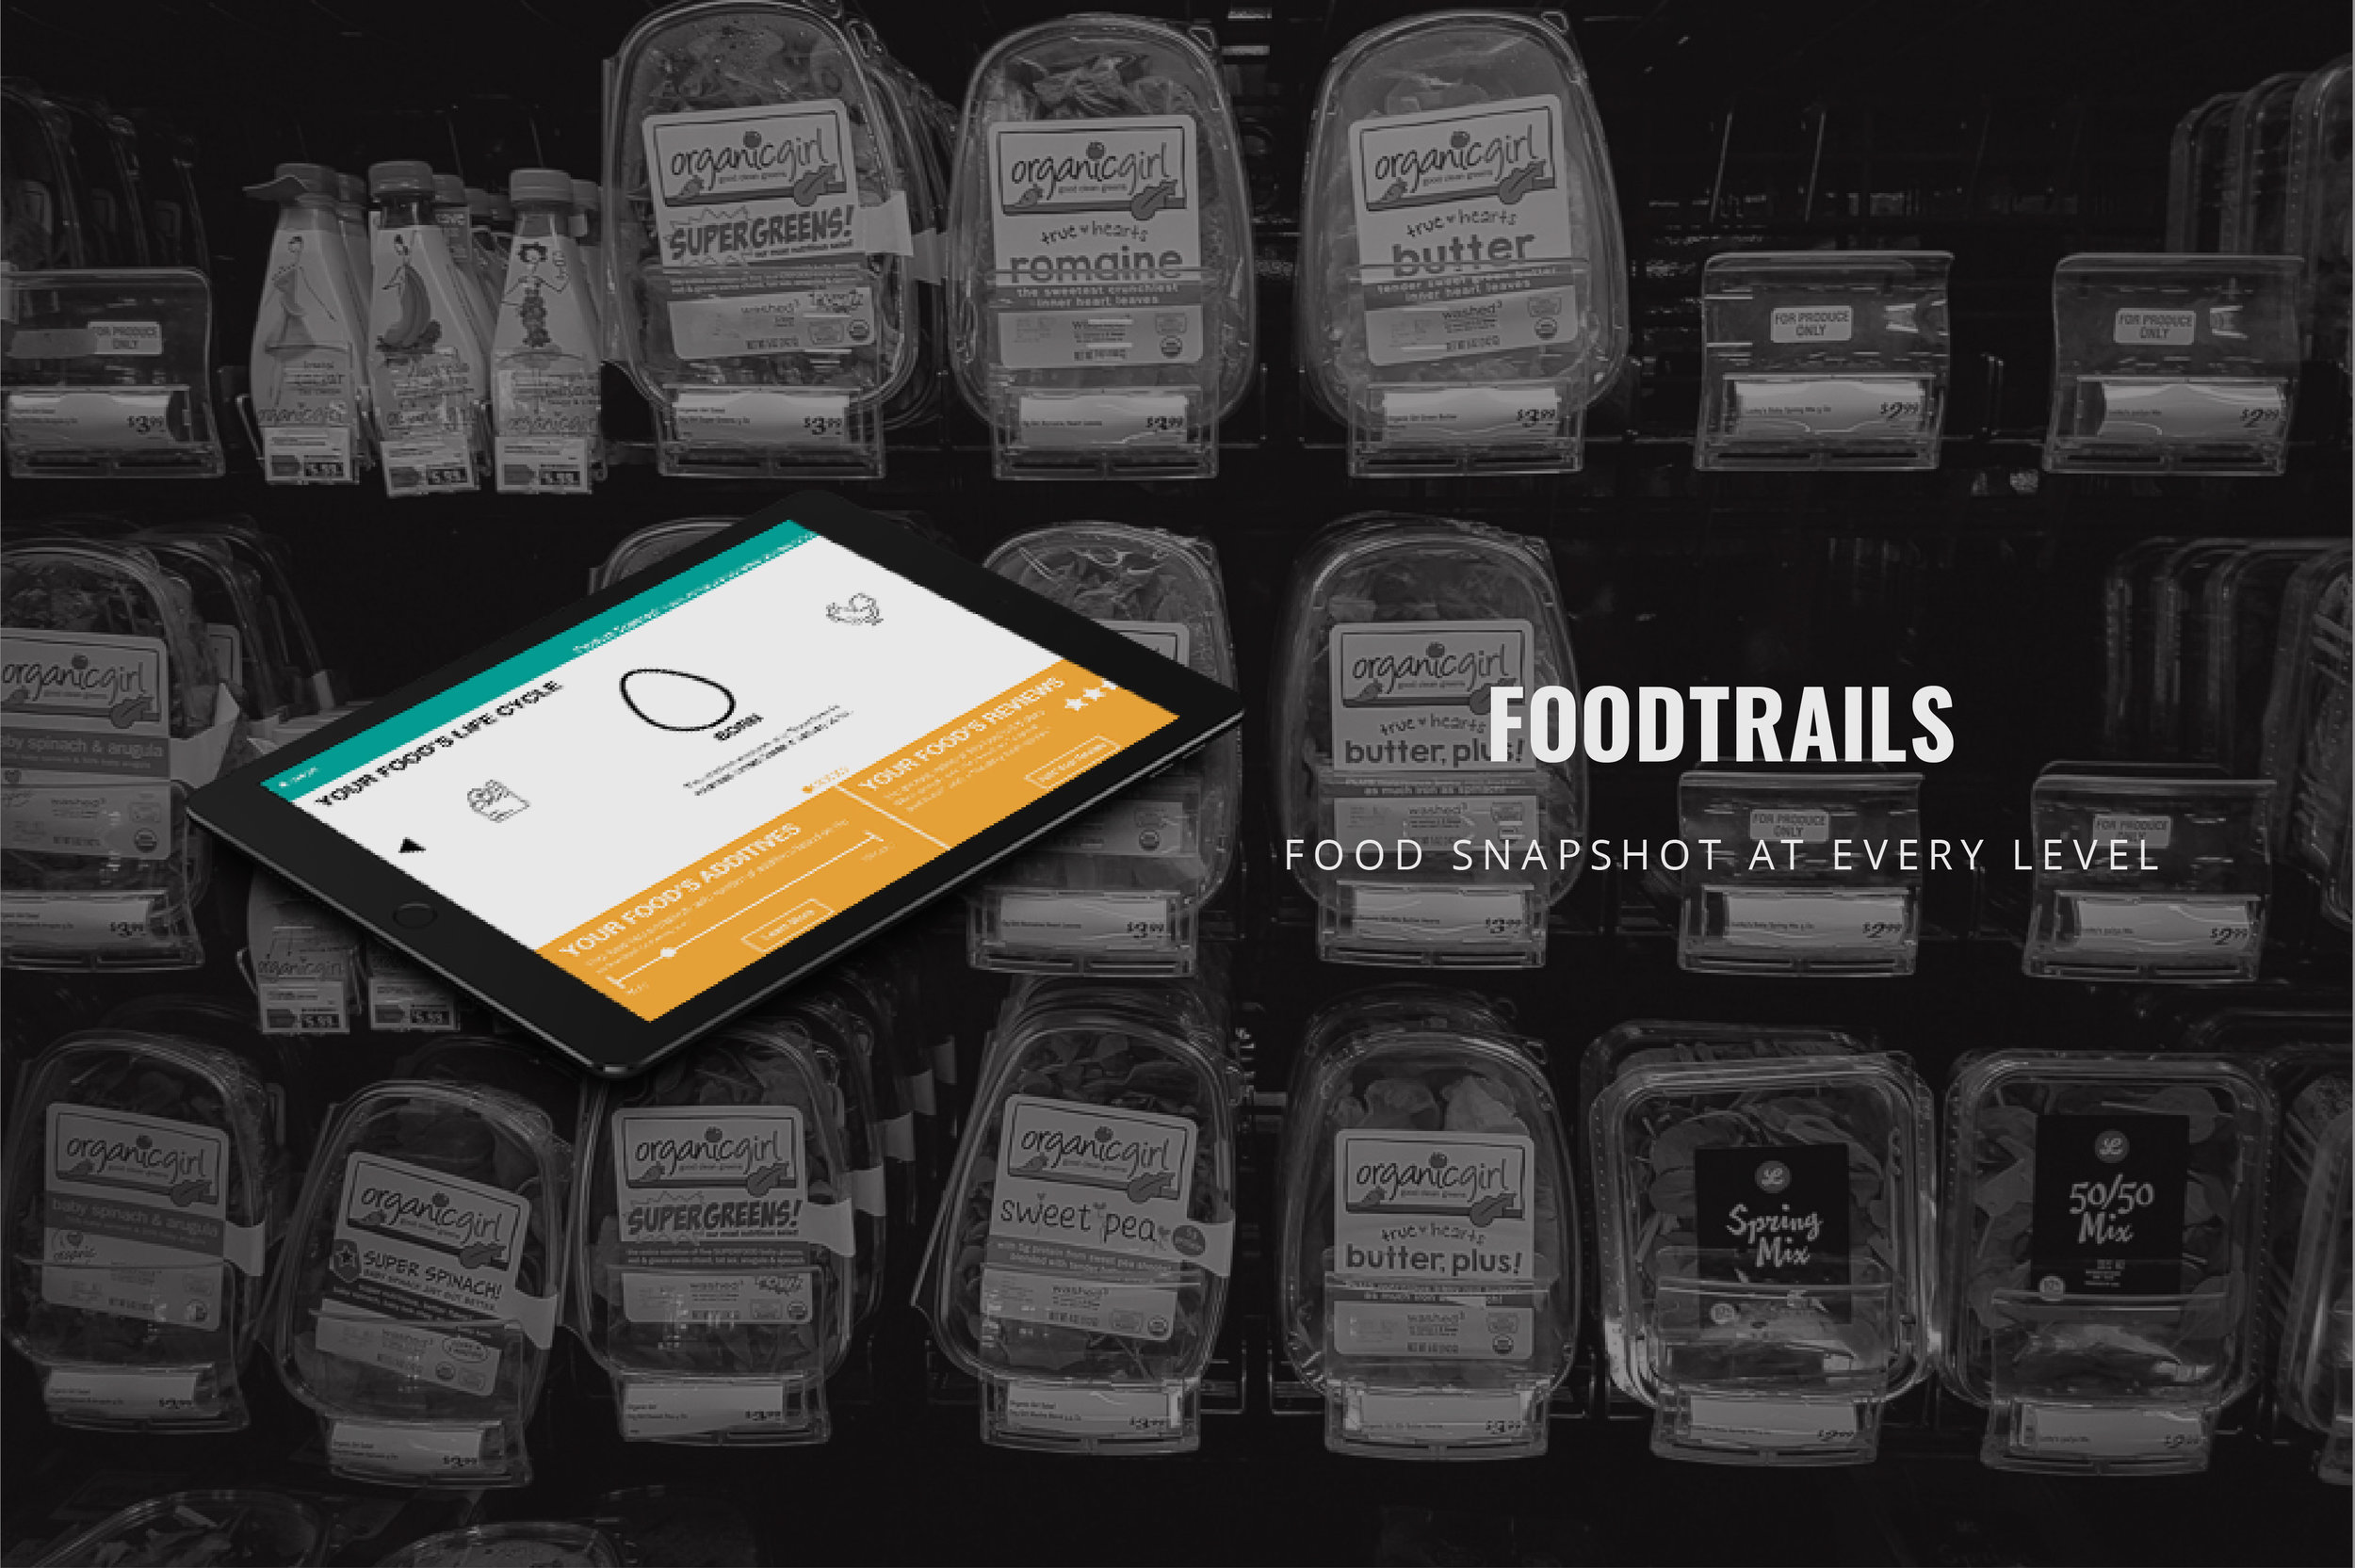 UX Research for Center for Food Safety - Synthesized consumer insights by using various research methods to enhance food safety and transparency by providing a food product snapshot at every level, @ Indiana University.